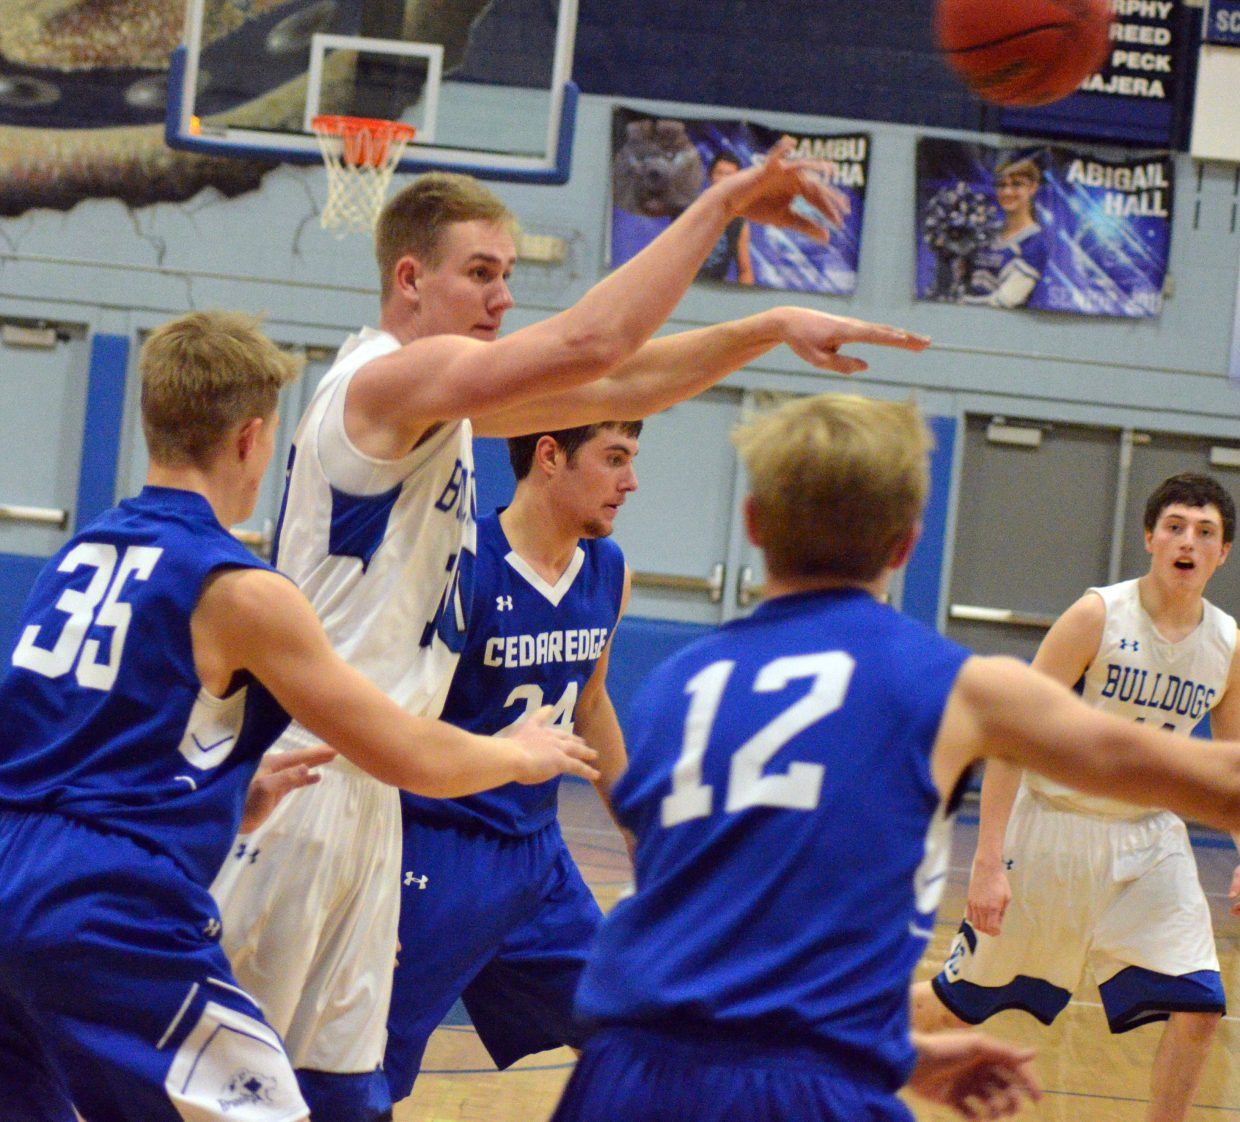 Moffat County High School's Colby Beaver dishes out a pass.